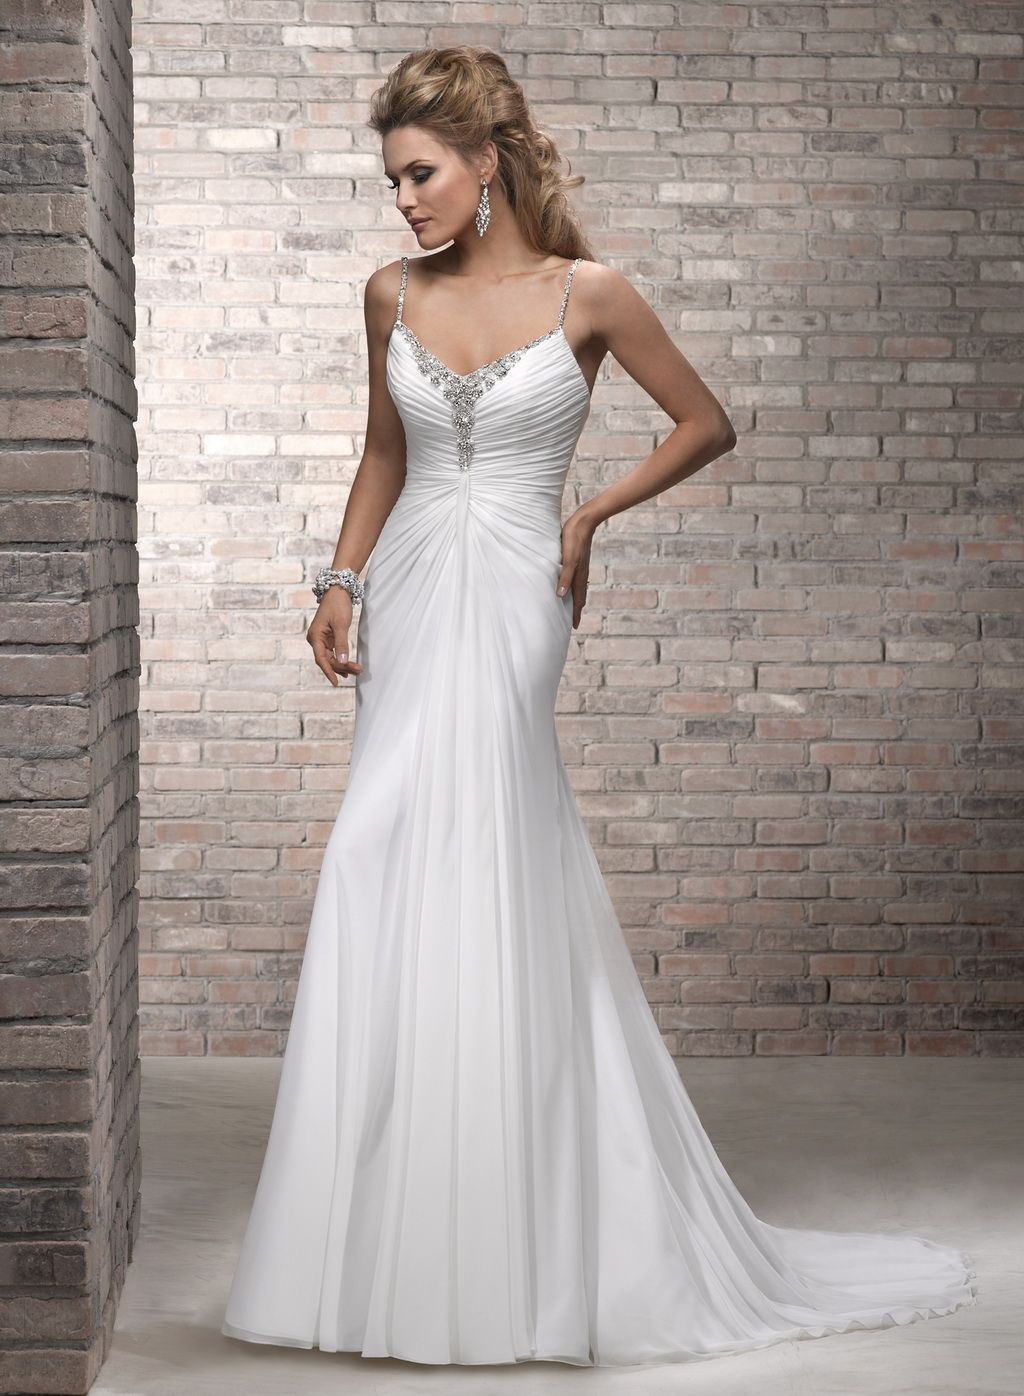 62930b40 Sheath/Column Spaghetti Straps Sleeveless Chiffon Wedding Dress #USAHSMG004